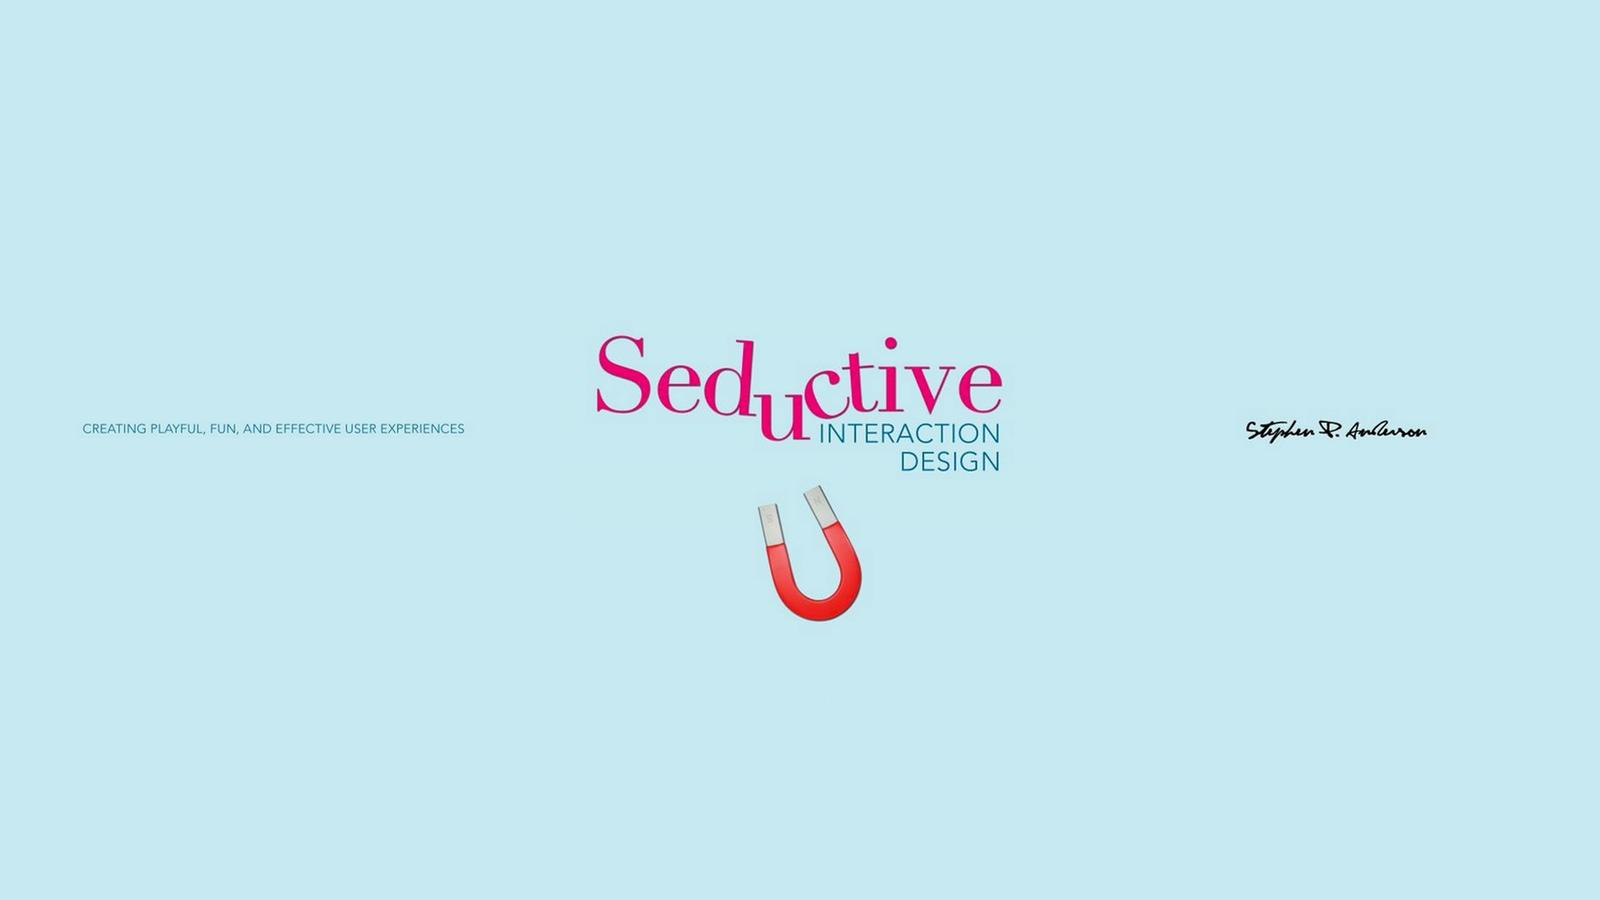 Seductive Interaction Design: Creating Playful, Fun, and Effective User Experiences